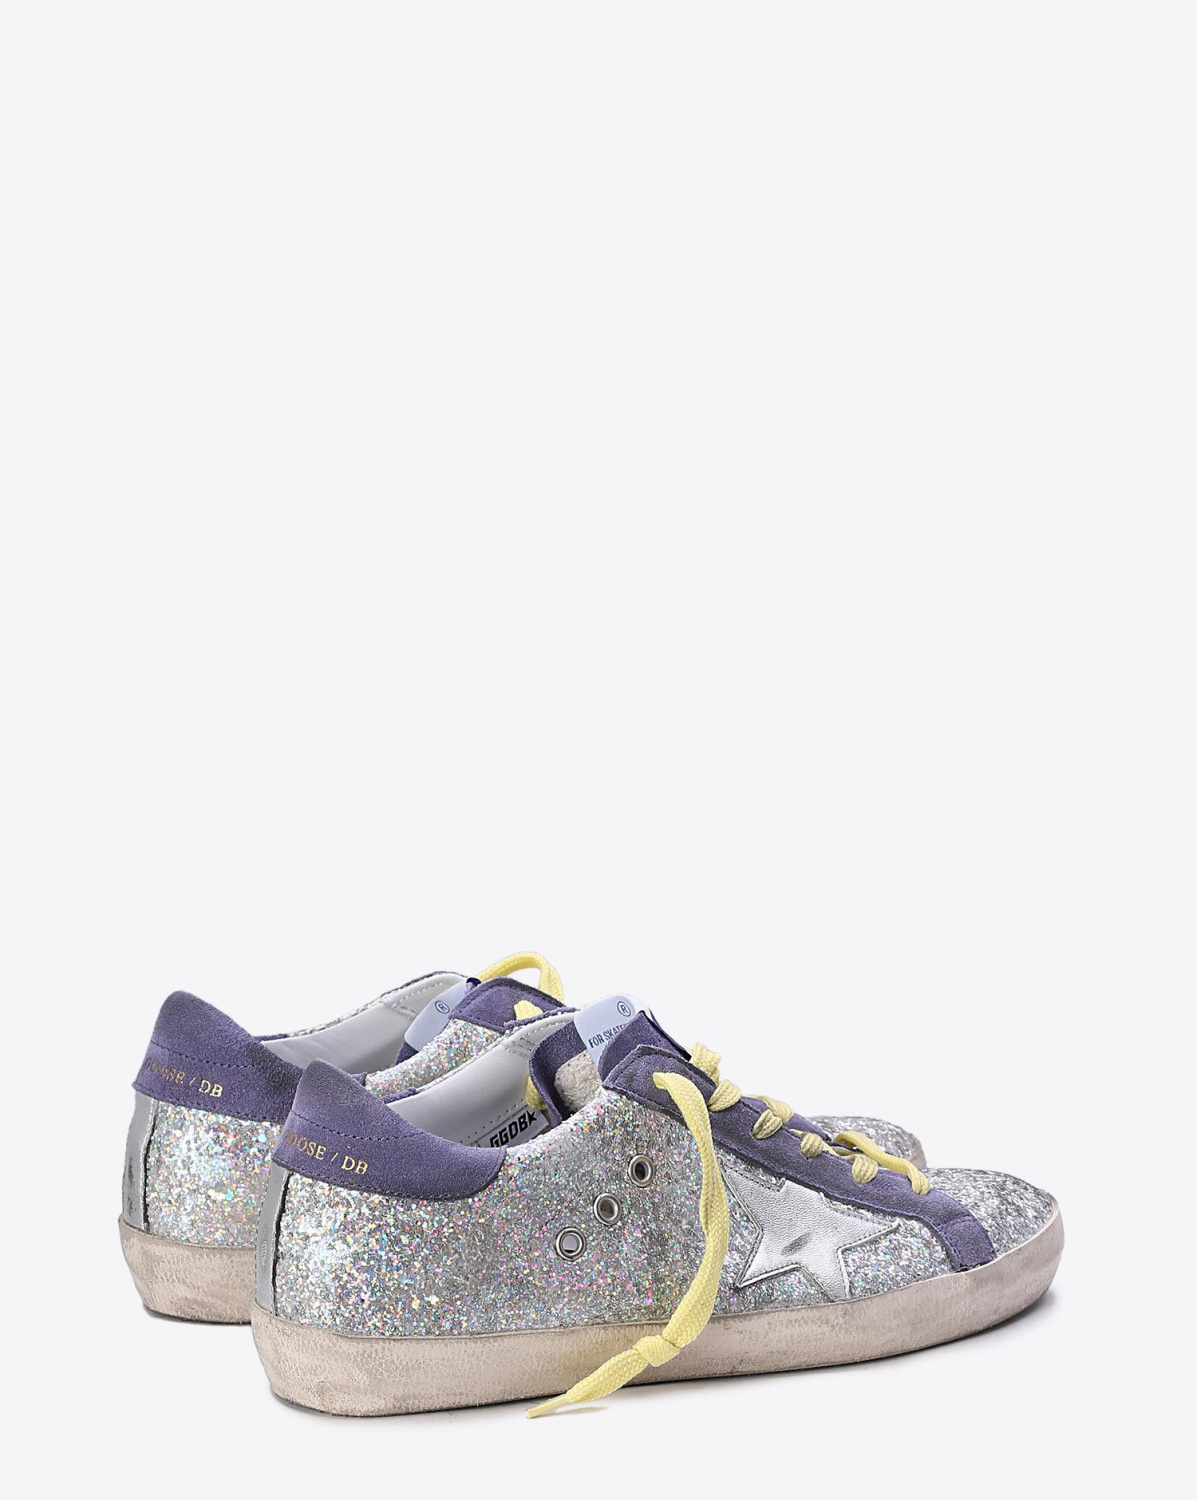 Golden Goose Woman Collection Sneakers Superstar Purple Glitter - Silver Star